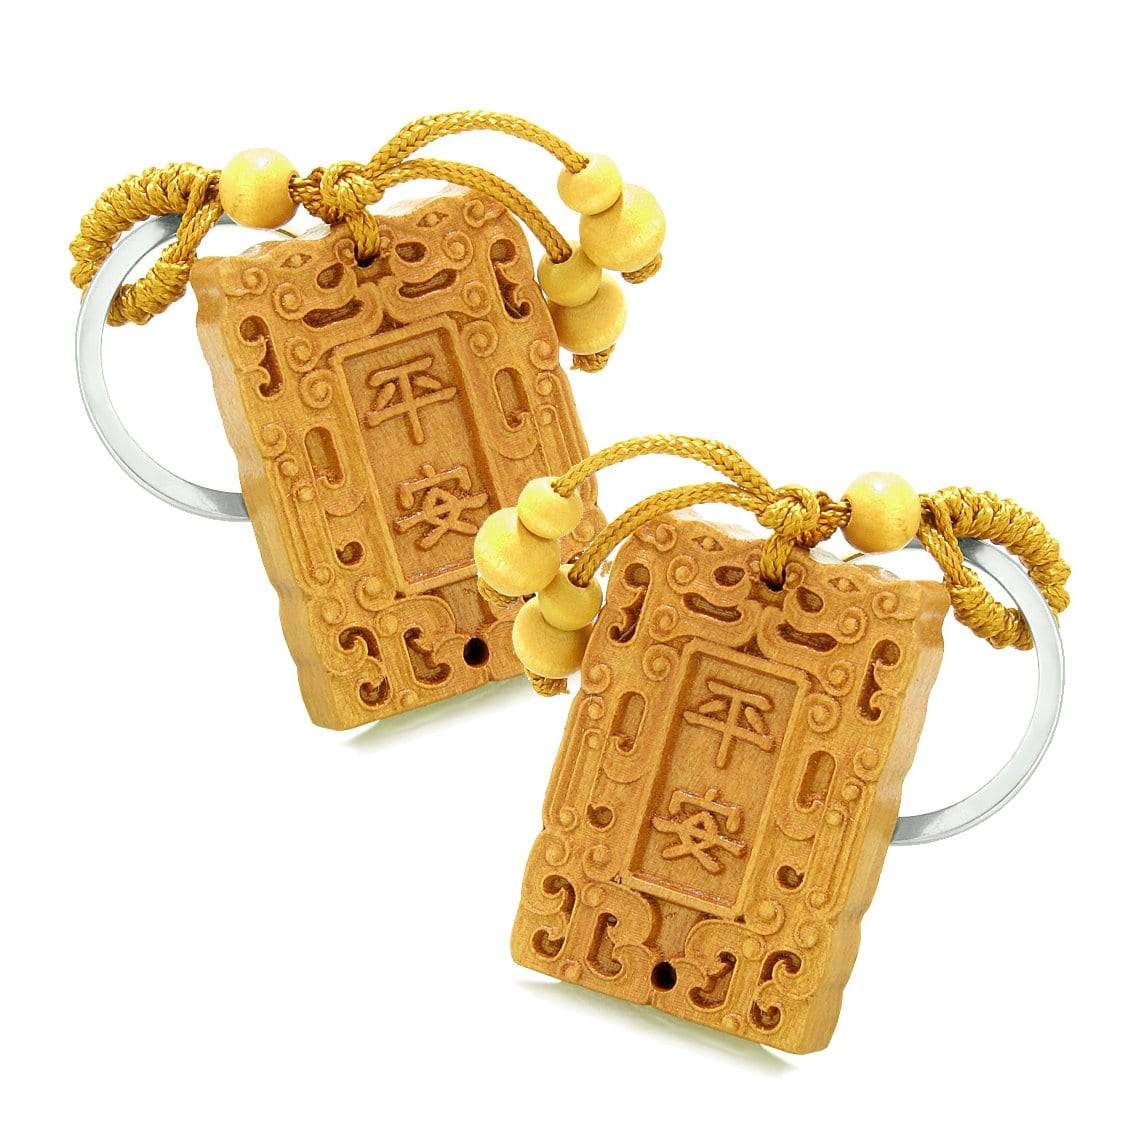 Amulet Good Luck Charm Tablet Magic Powers Feng Shui Symbols Keychain Set Blessings